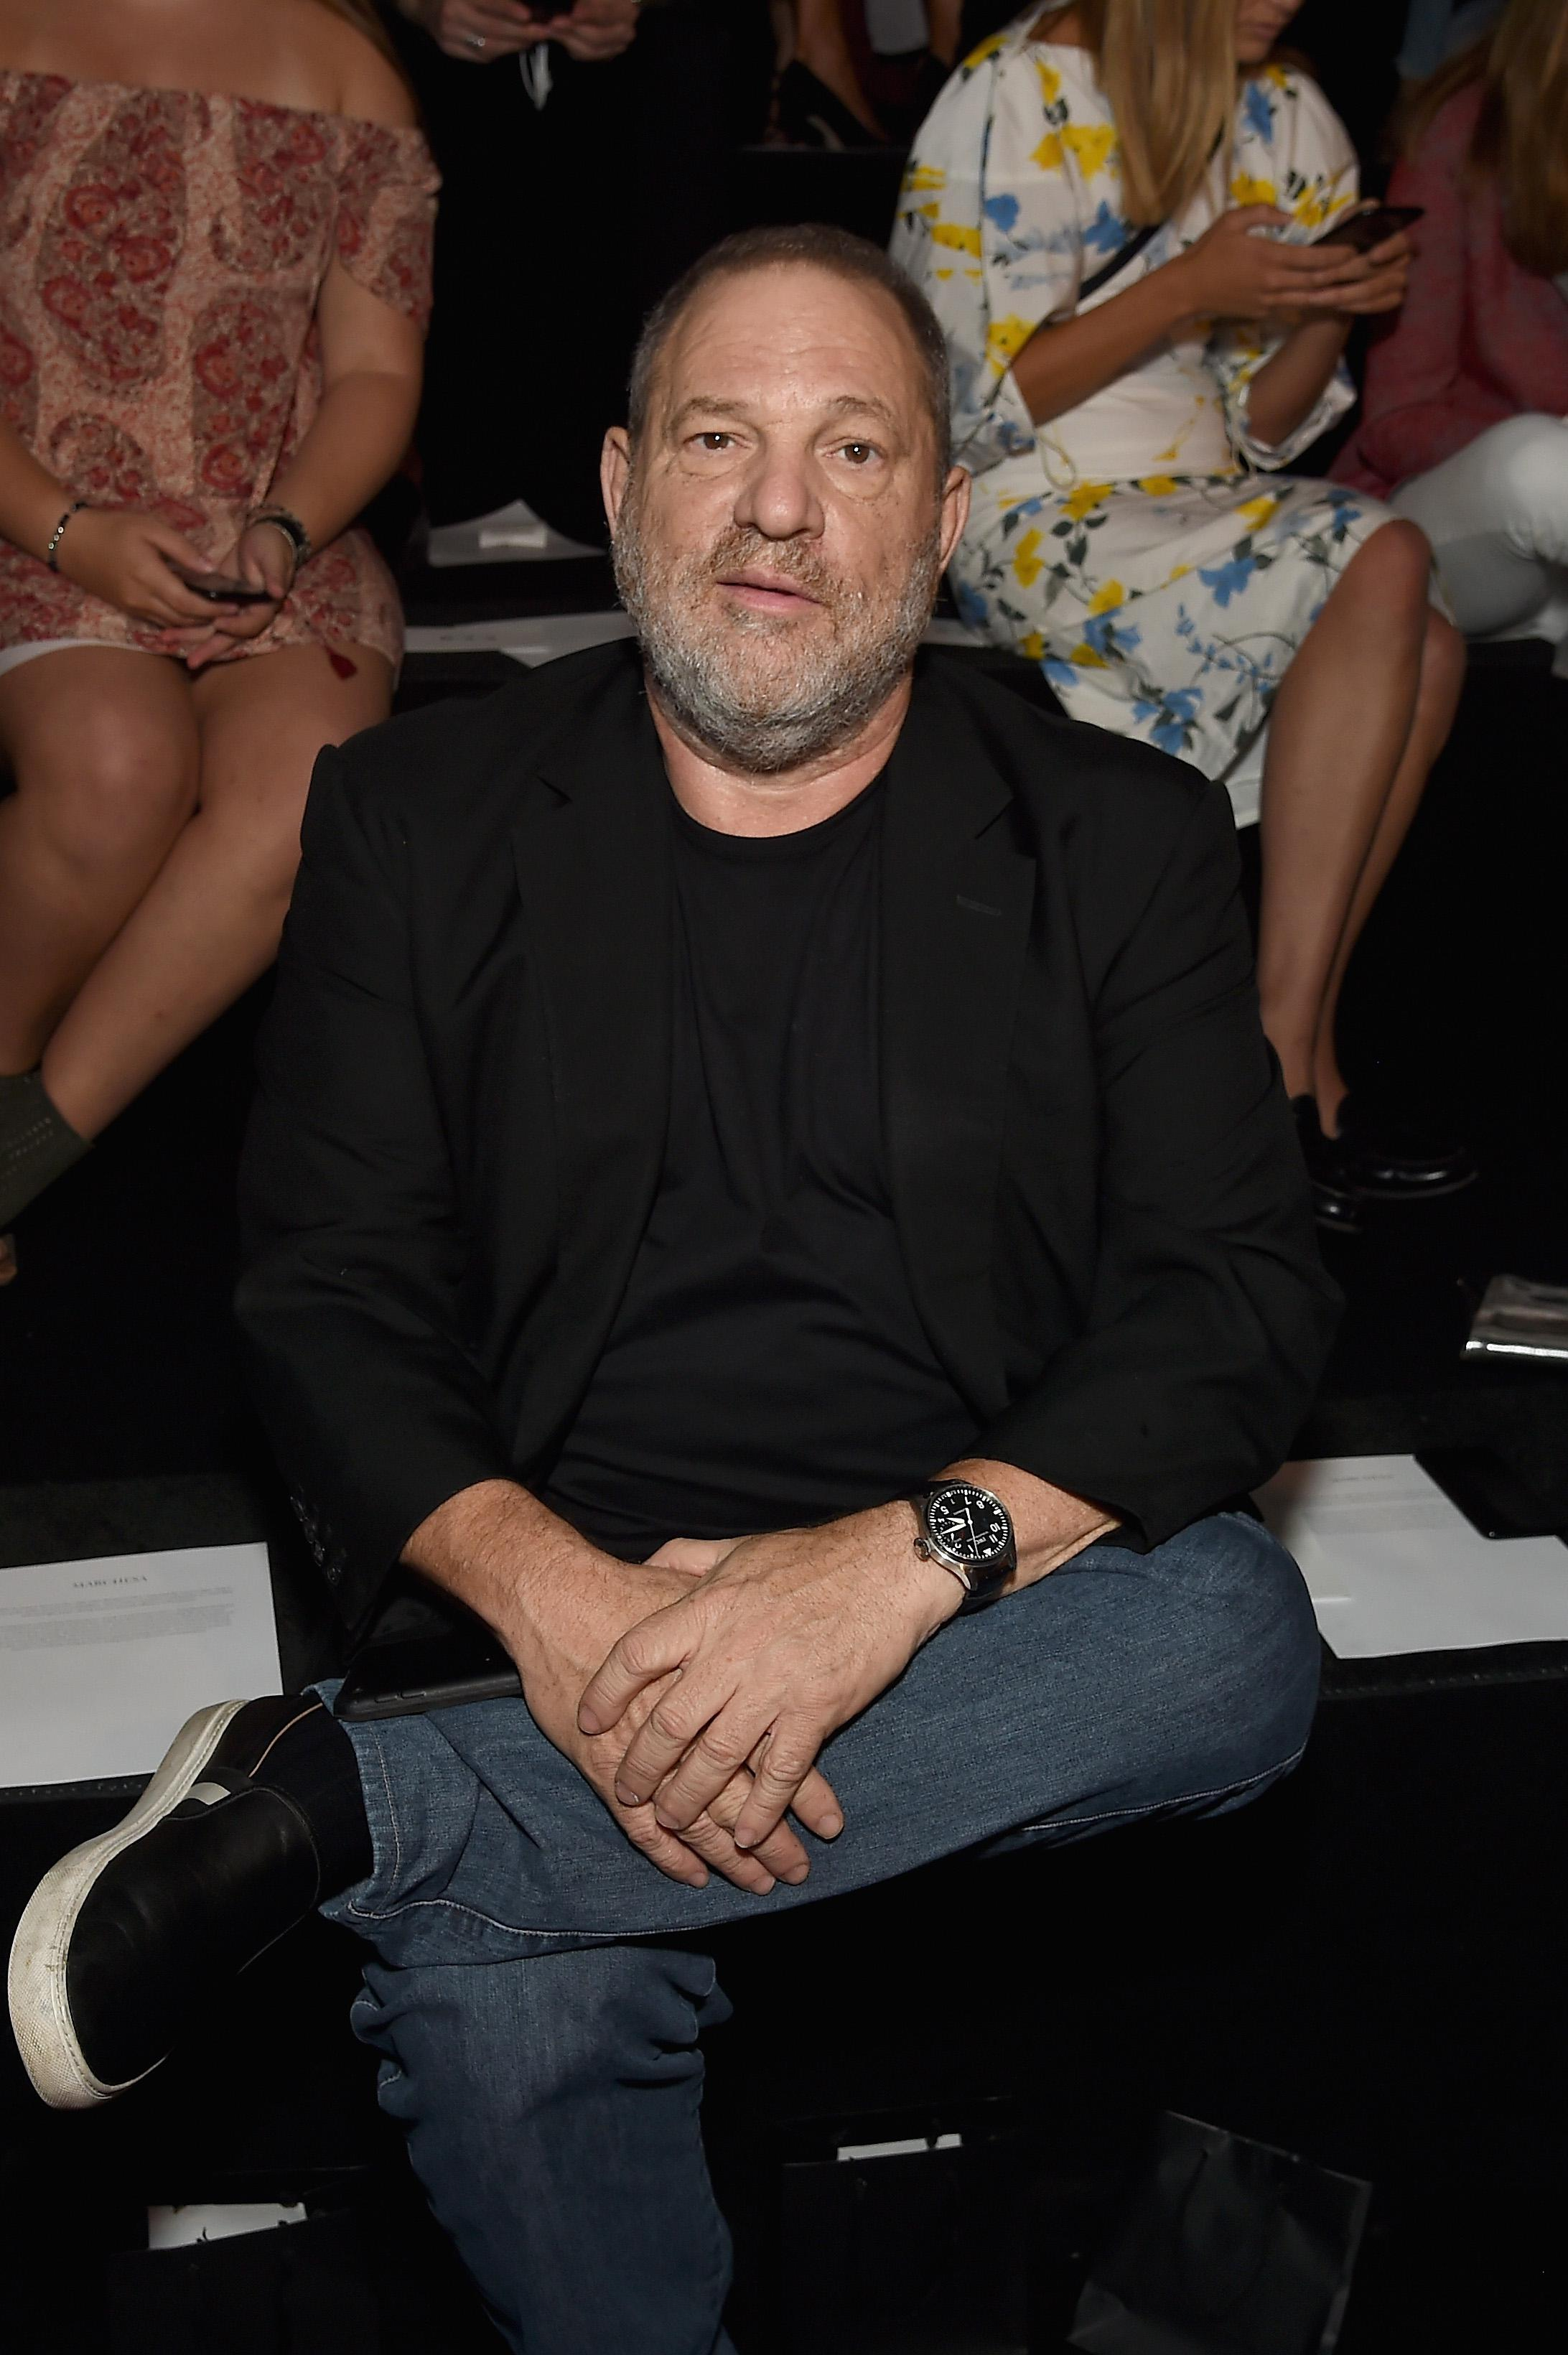 NEW YORK, NY - SEPTEMBER 13:  Producer Harvey Weinstein attends the Marchesa fashion show during New York Fashion Week: The Shows at Gallery 1, Skylight Clarkson Sq on September 13, 2017 in New York City.  (Photo by Nicholas Hunt/Getty Images For NYFW: The Shows)